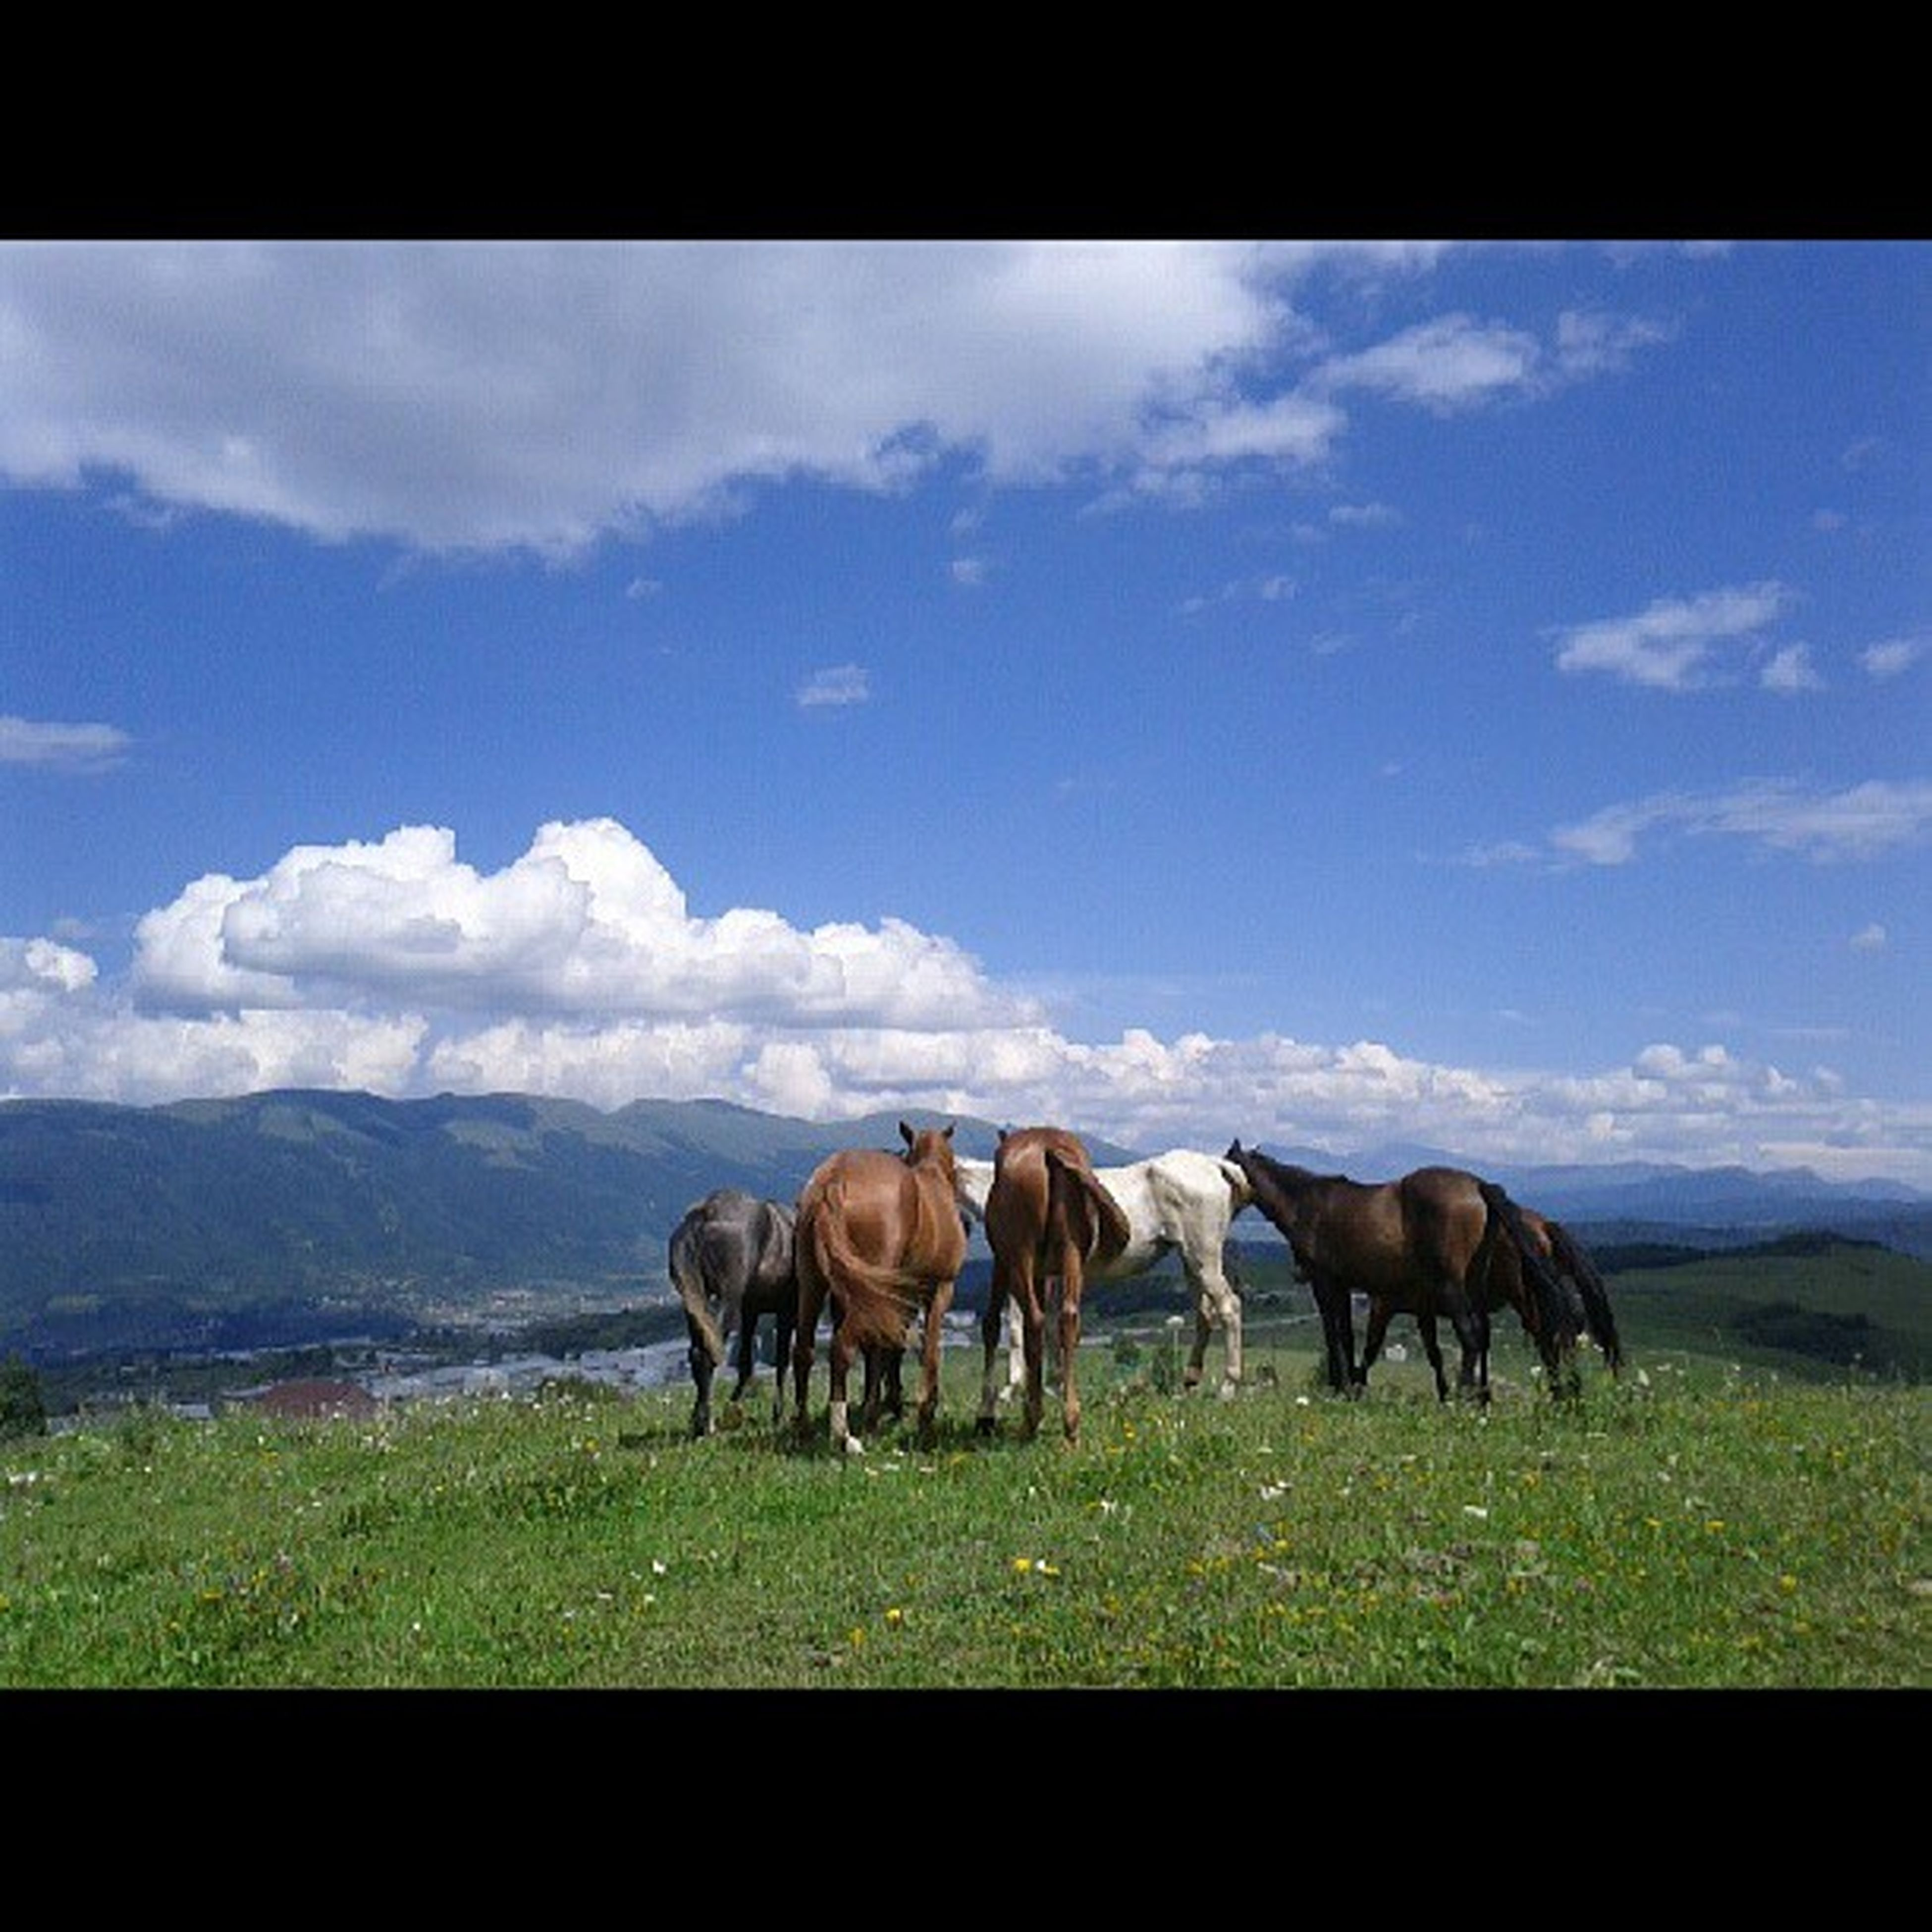 animal themes, livestock, domestic animals, horse, mammal, field, grazing, grass, landscape, sky, herbivorous, standing, cow, pasture, nature, medium group of animals, tranquility, full length, cloud - sky